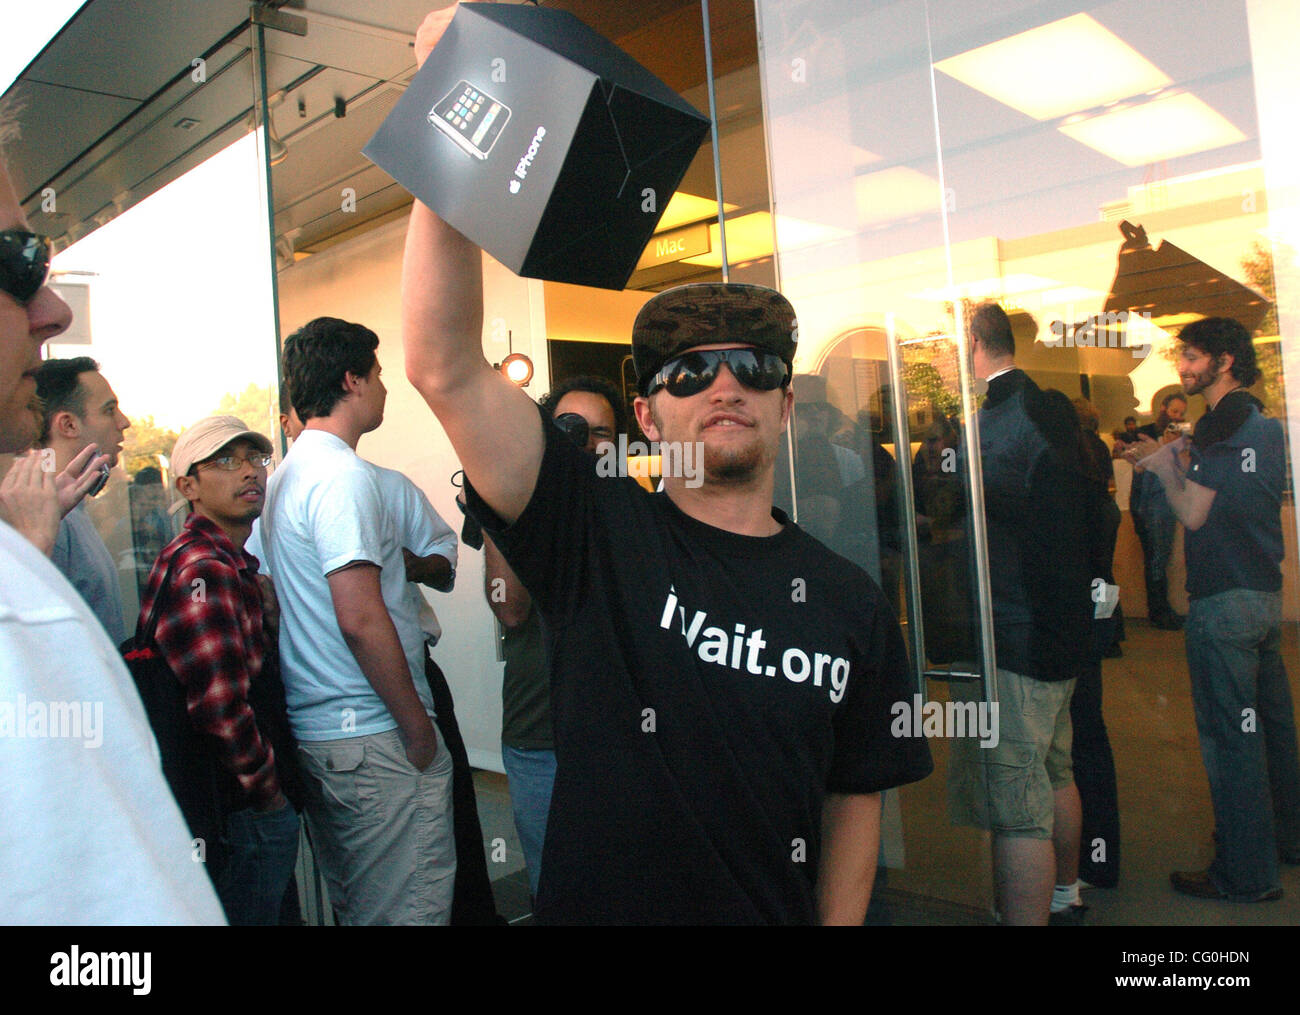 Josh May, 18, of Benicia was among the first customer to purchase an iPhone at the Apple store in Walnut Creek, - Stock Image